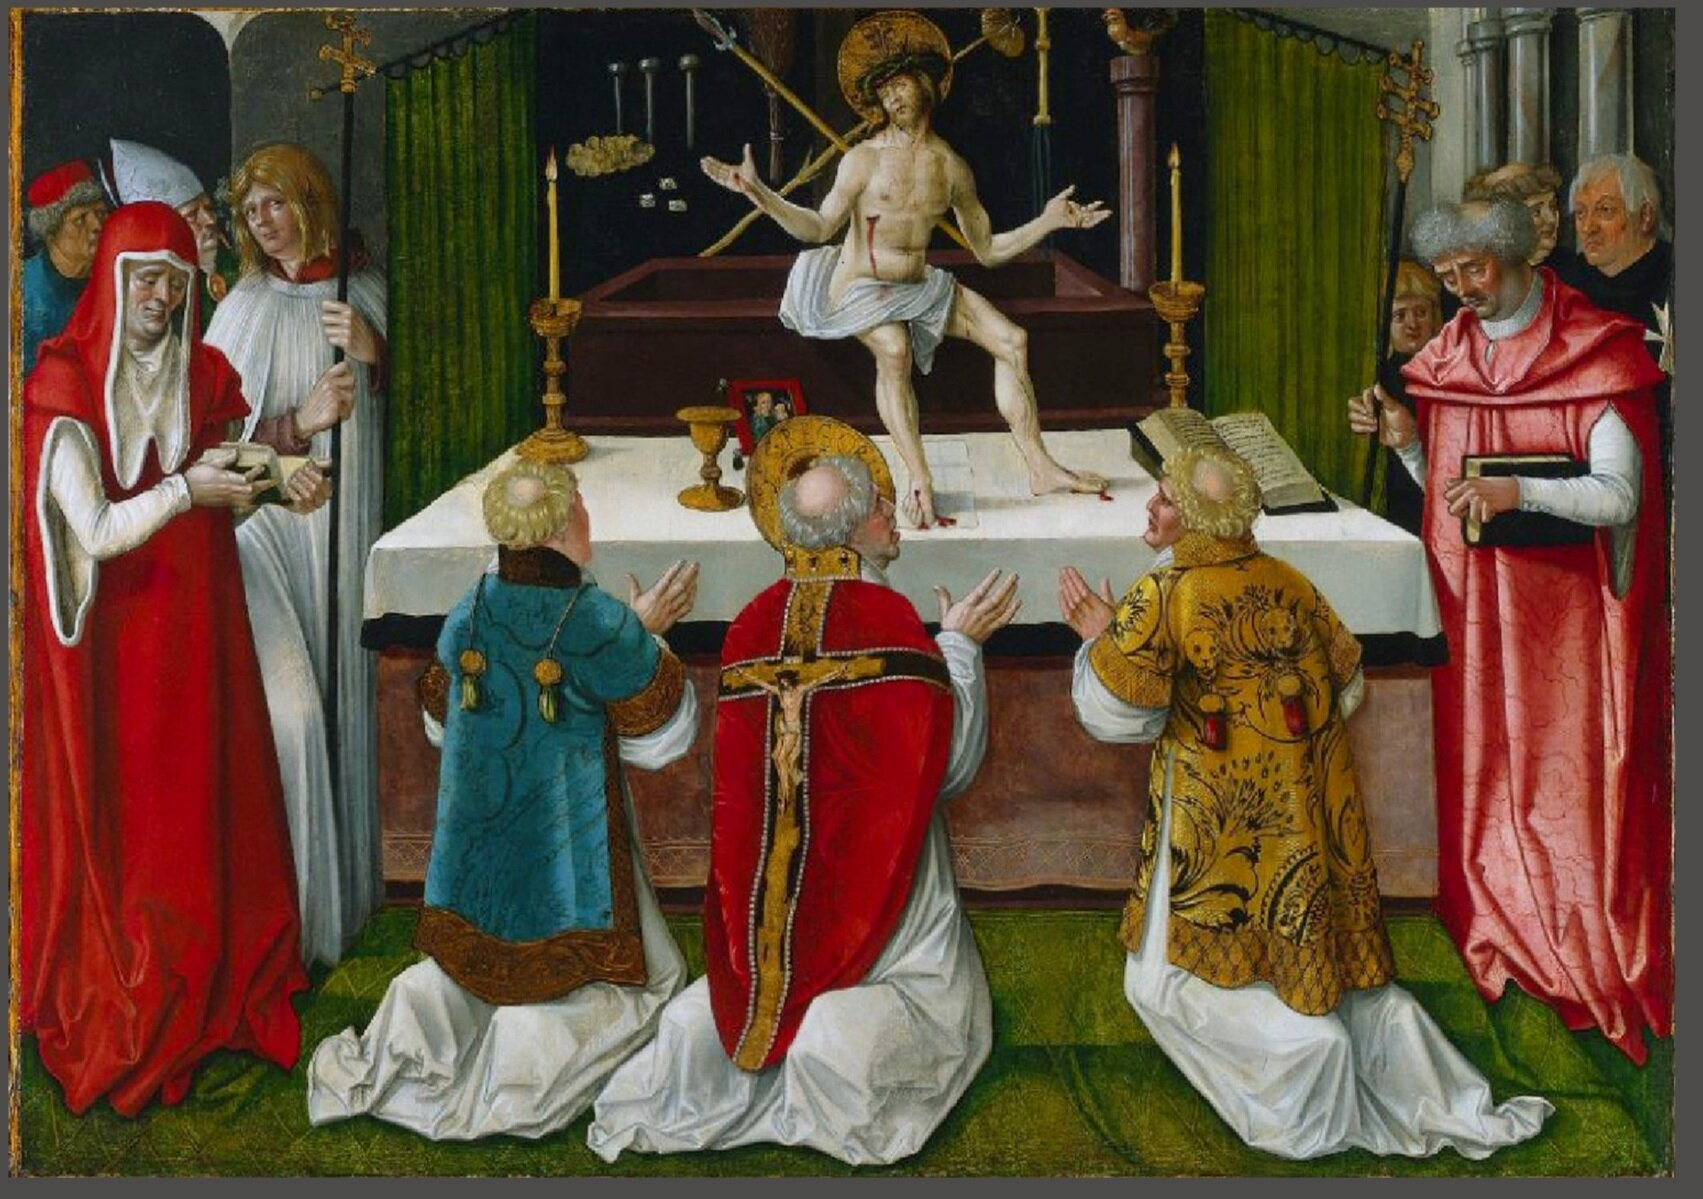 The Miraculous Mass of St. Gregory, 6th Century by Hans Baldung, Strassburg, Germany 1511